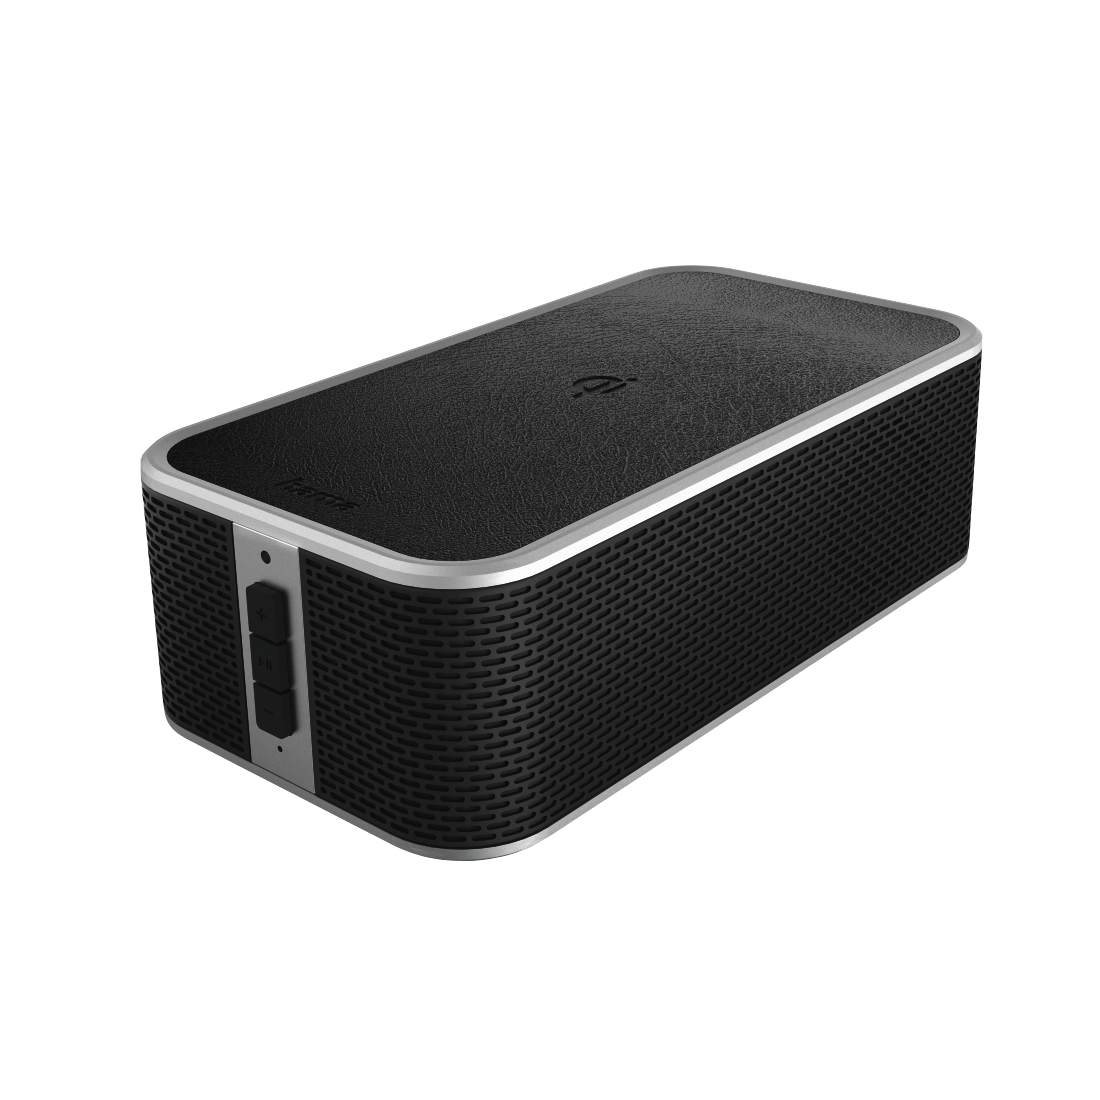 abx2 High-Res Image 2 - Hama, Enceinte Bluetooth + chargeur Qi Power Brick